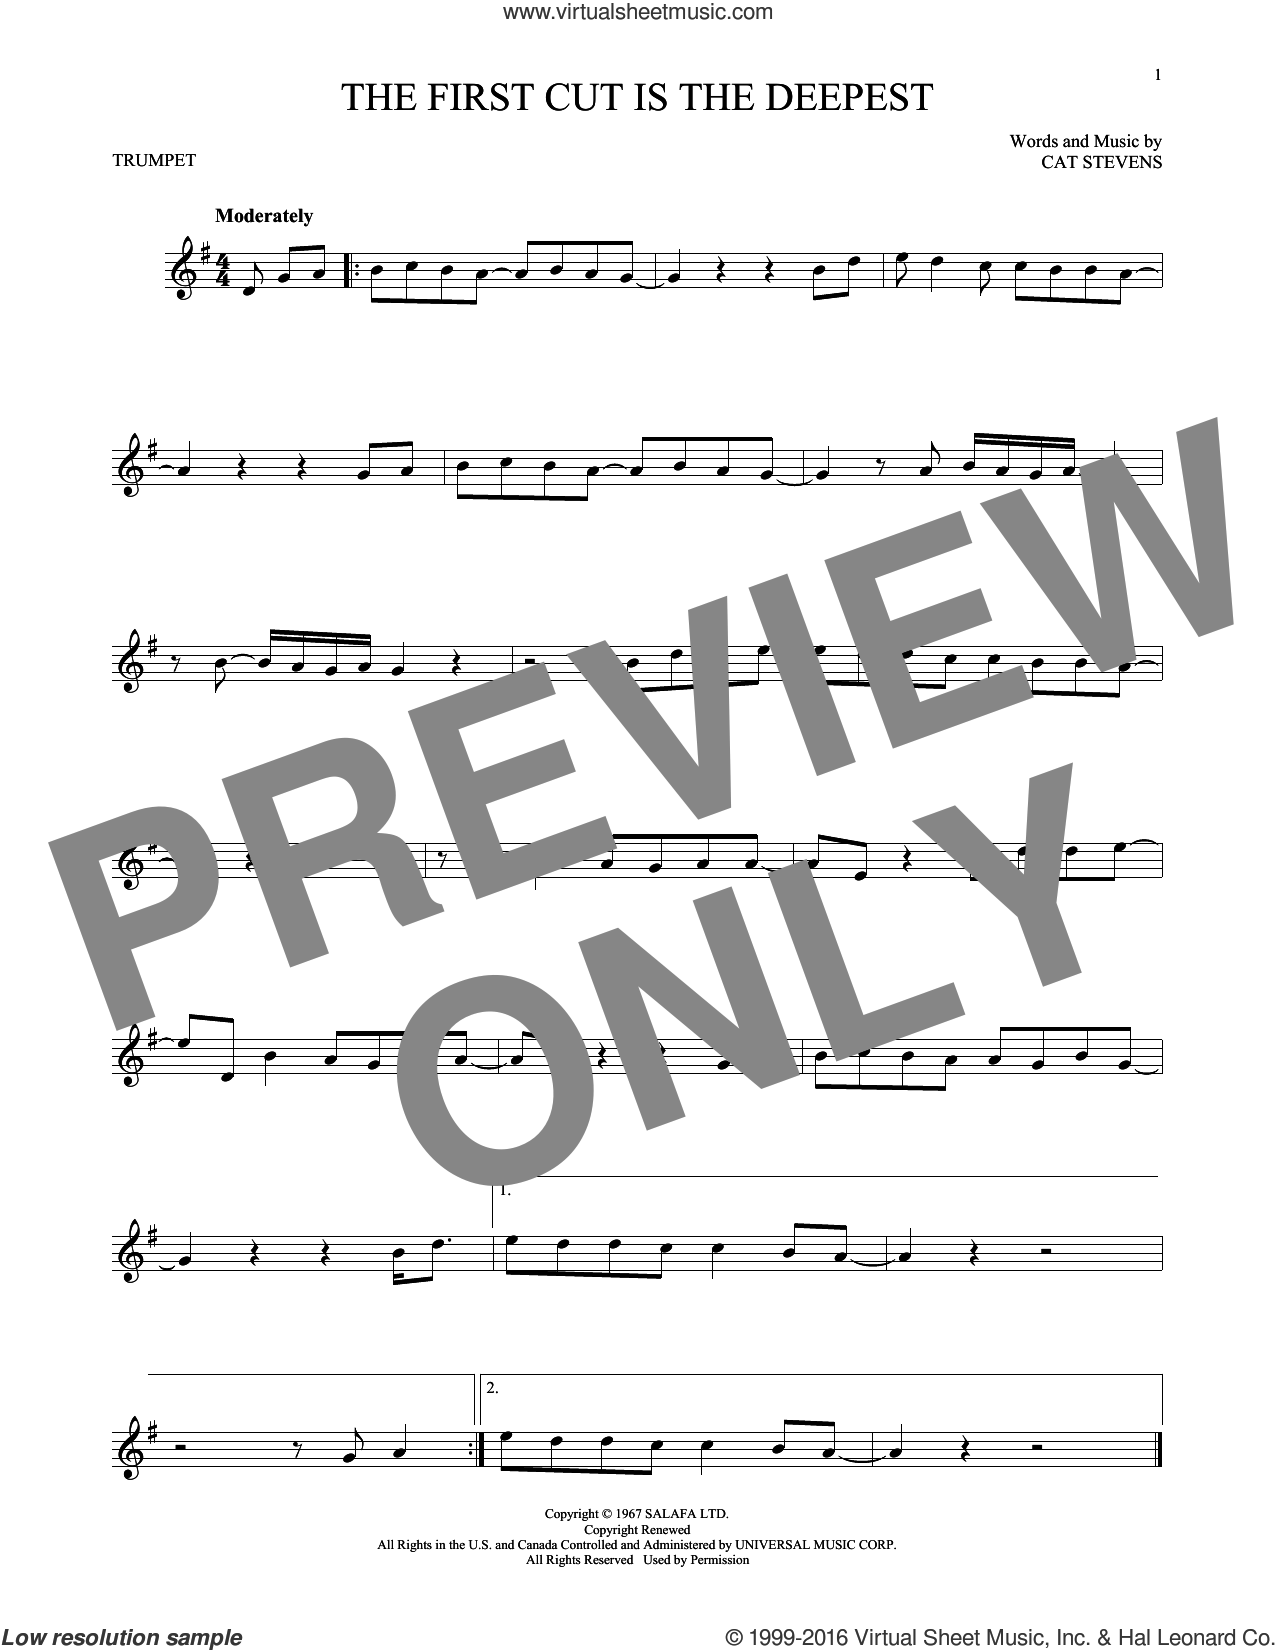 The First Cut Is The Deepest sheet music for trumpet solo by Cat Stevens, Rod Stewart and Sheryl Crow, intermediate skill level